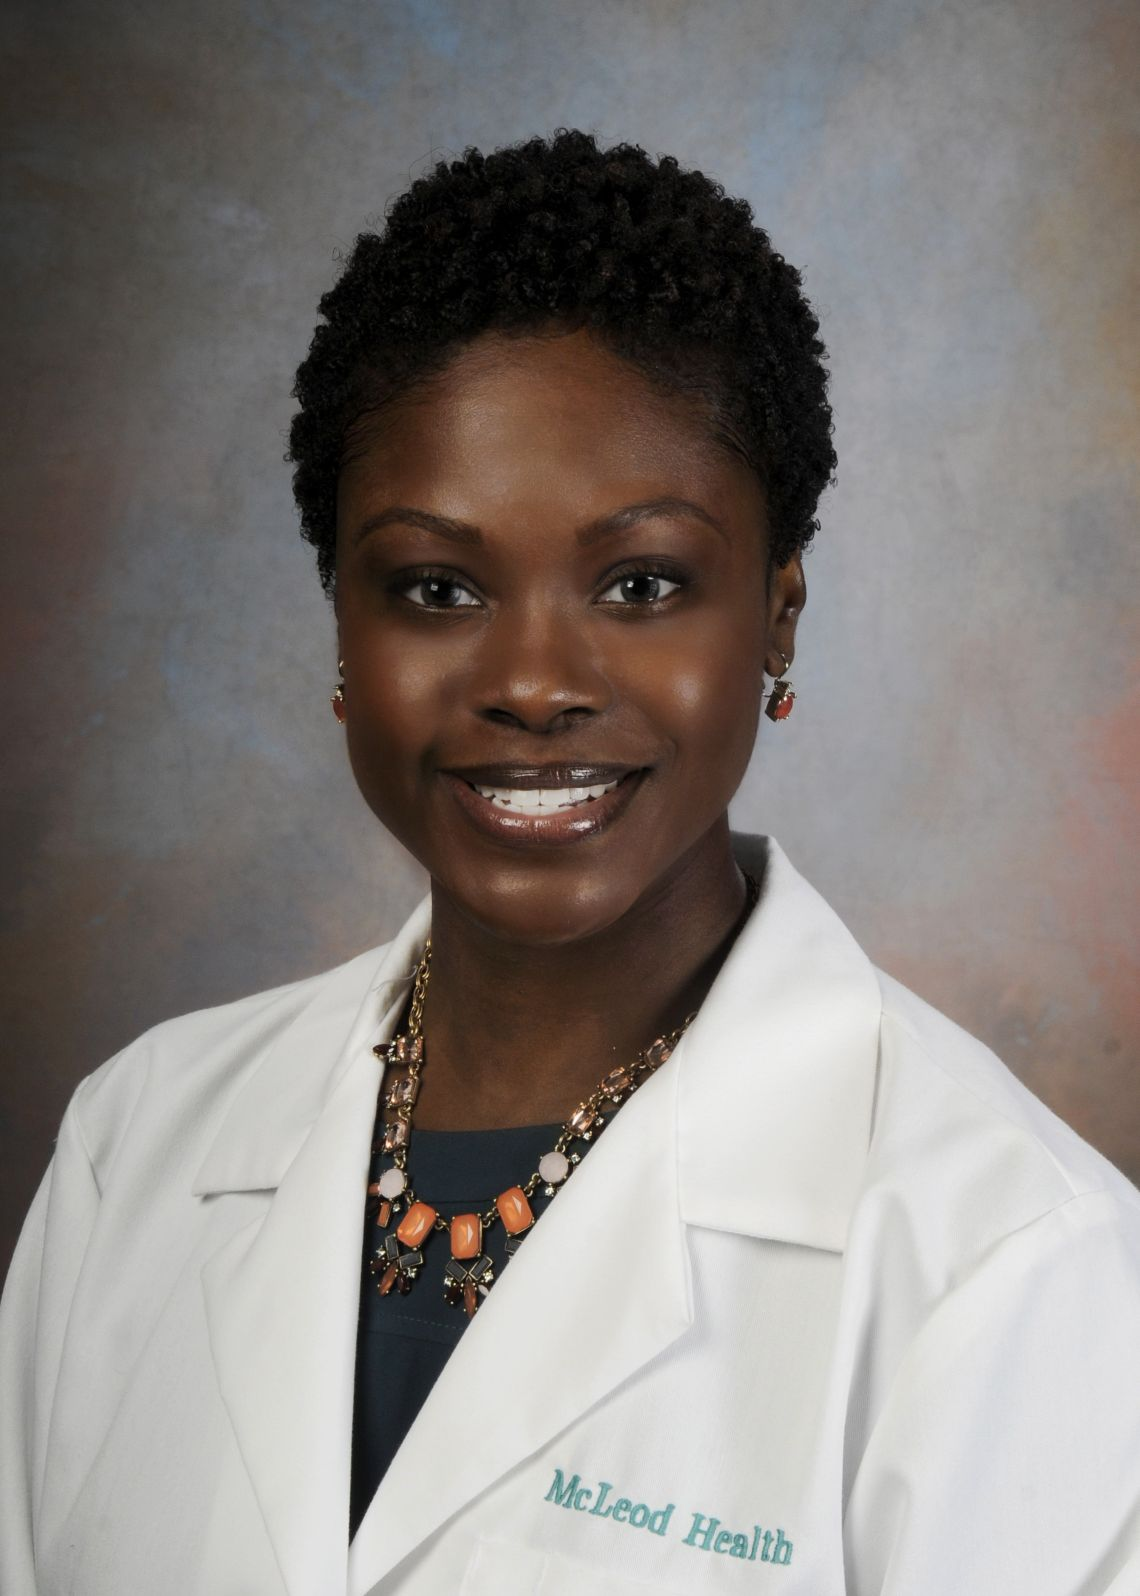 Loftley Leads New Physician Practice Mcleod Endocrinology